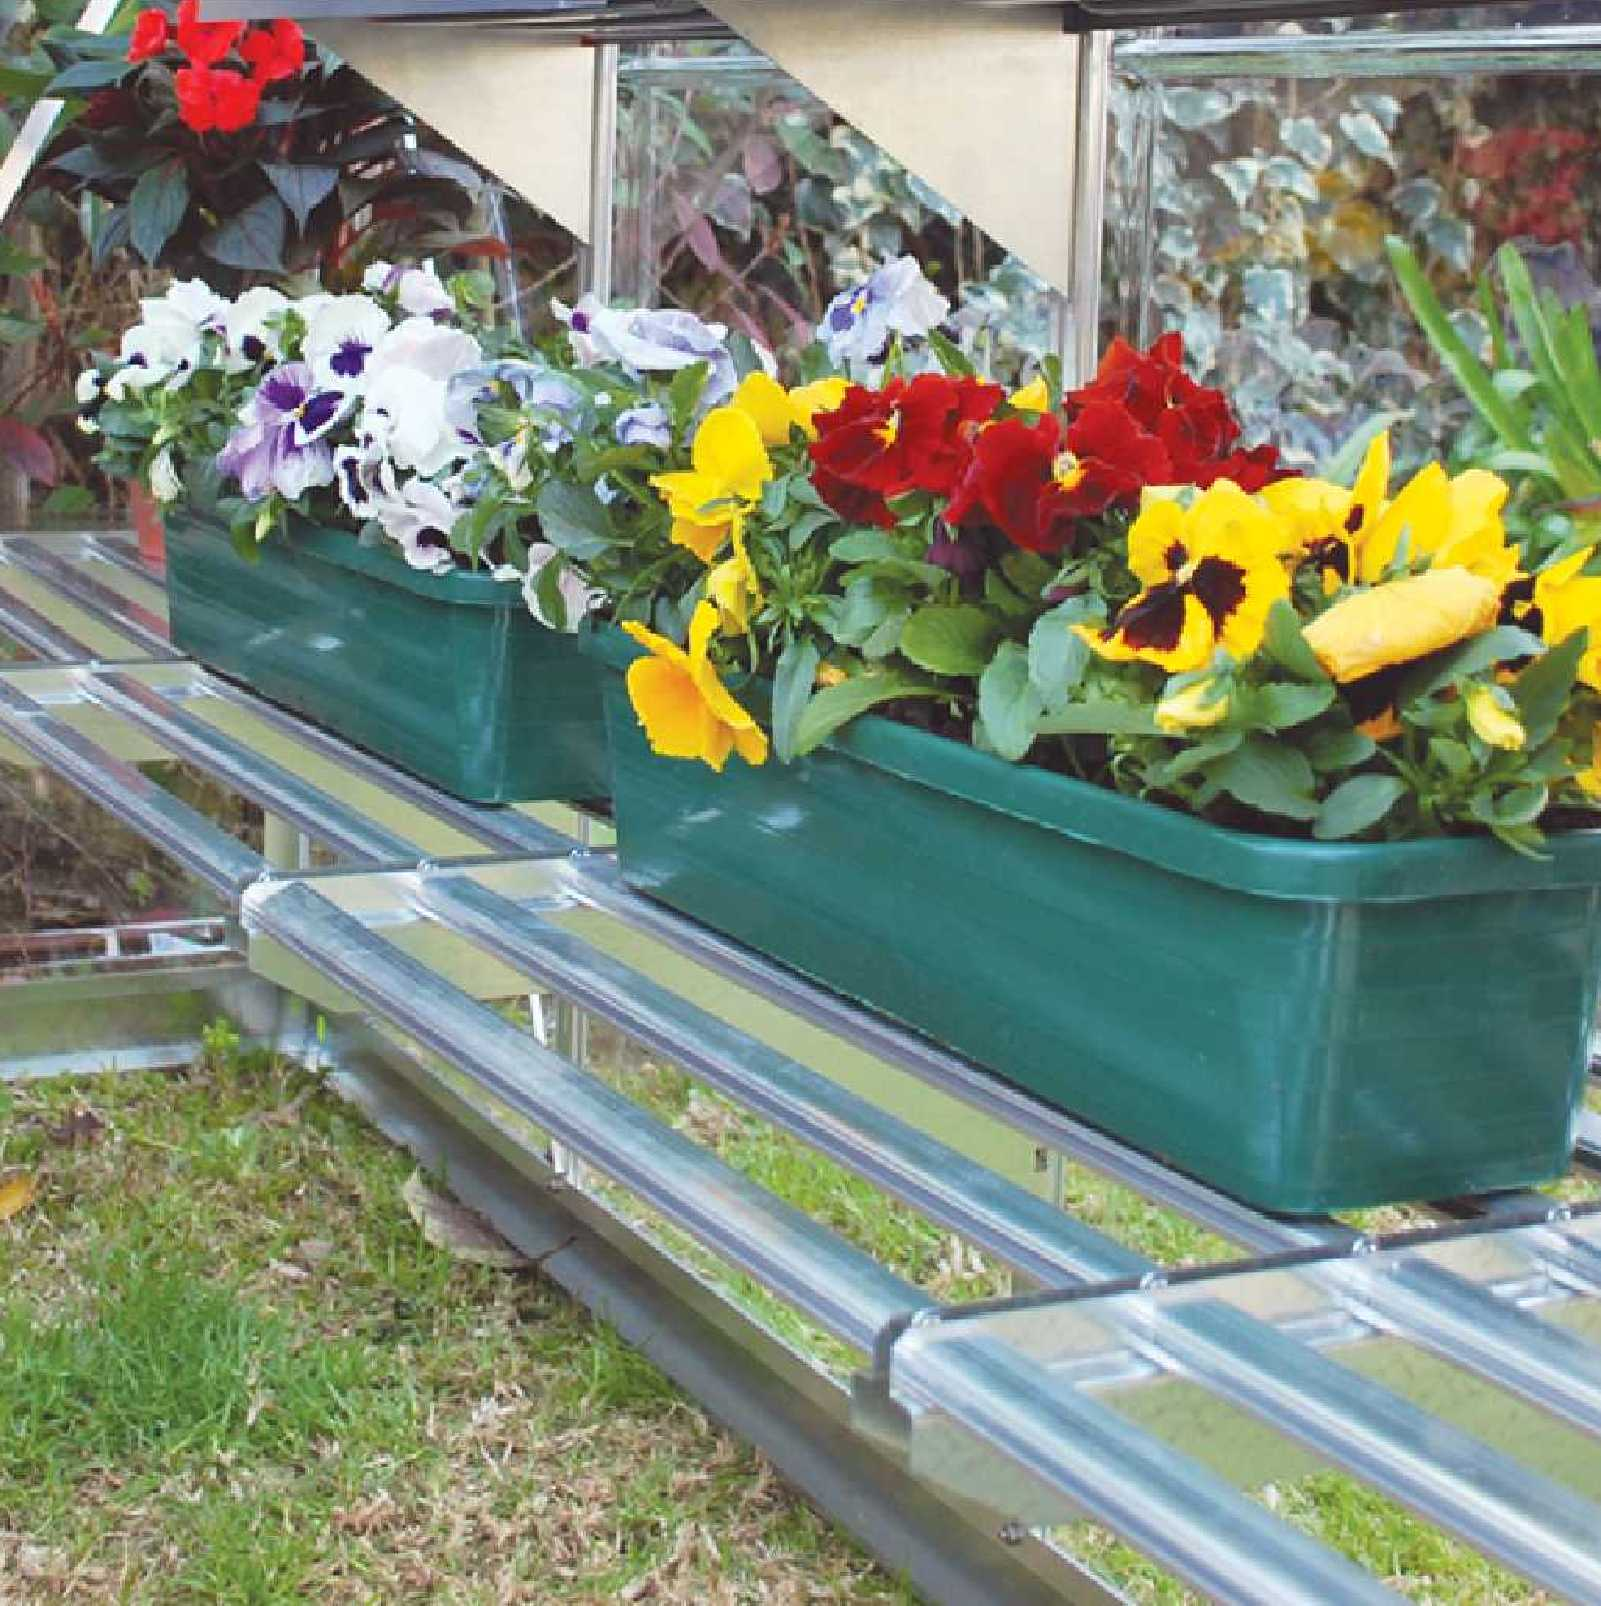 Heavy Duty Shelf Kit for Greenhouses